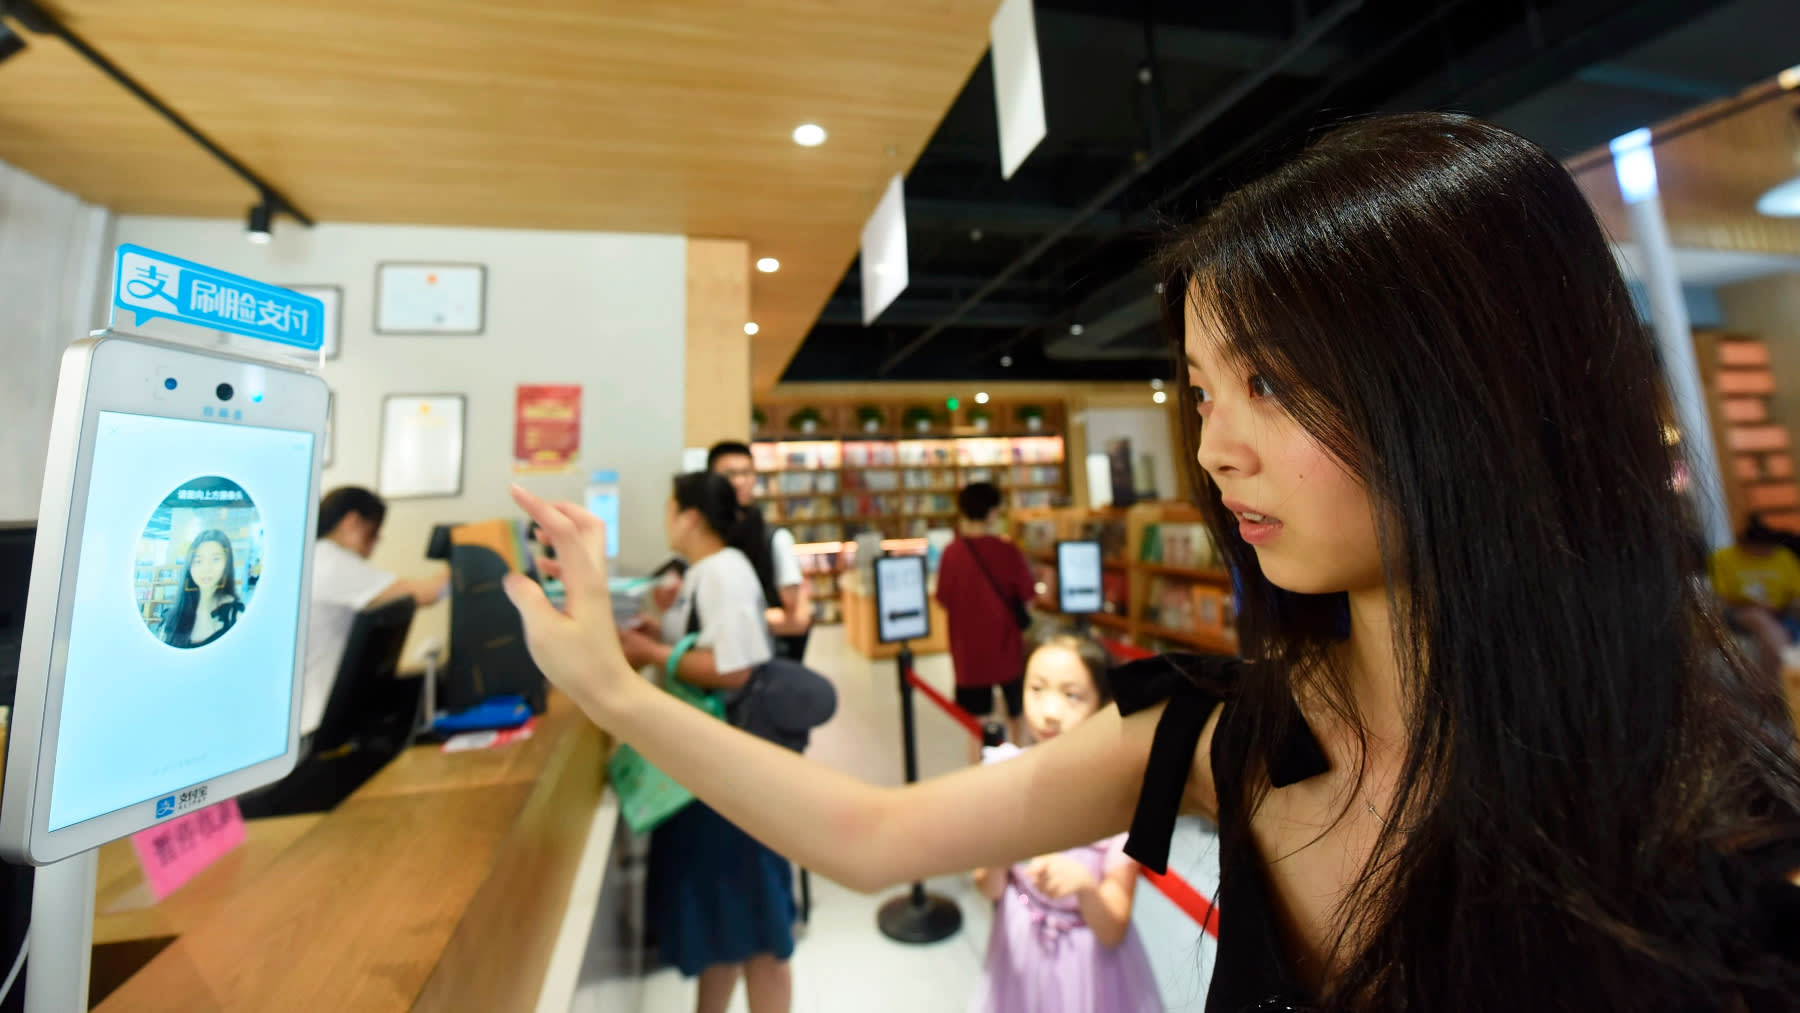 Pay with your face: 100m Chinese switch from smartphones - Nikkei Asian Review